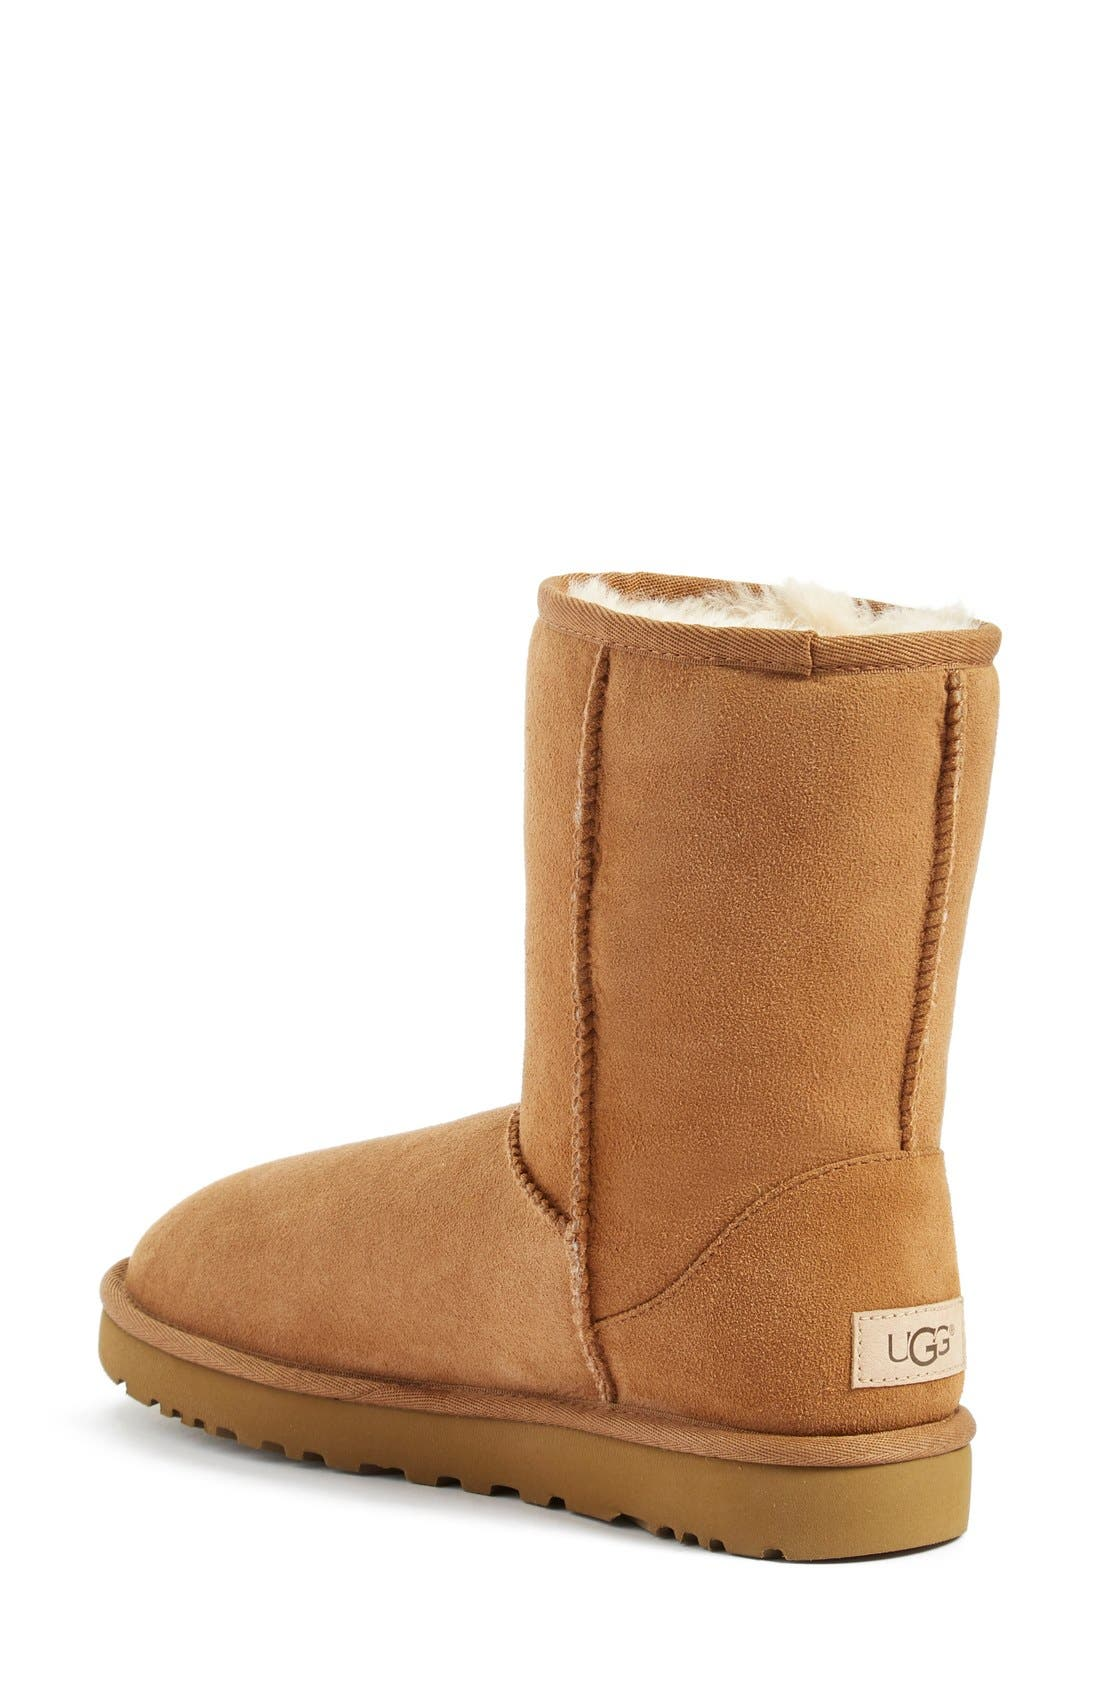 Alternate Image 2  - UGG® 'Classic II' Genuine Shearling Lined Short Boot (Women)